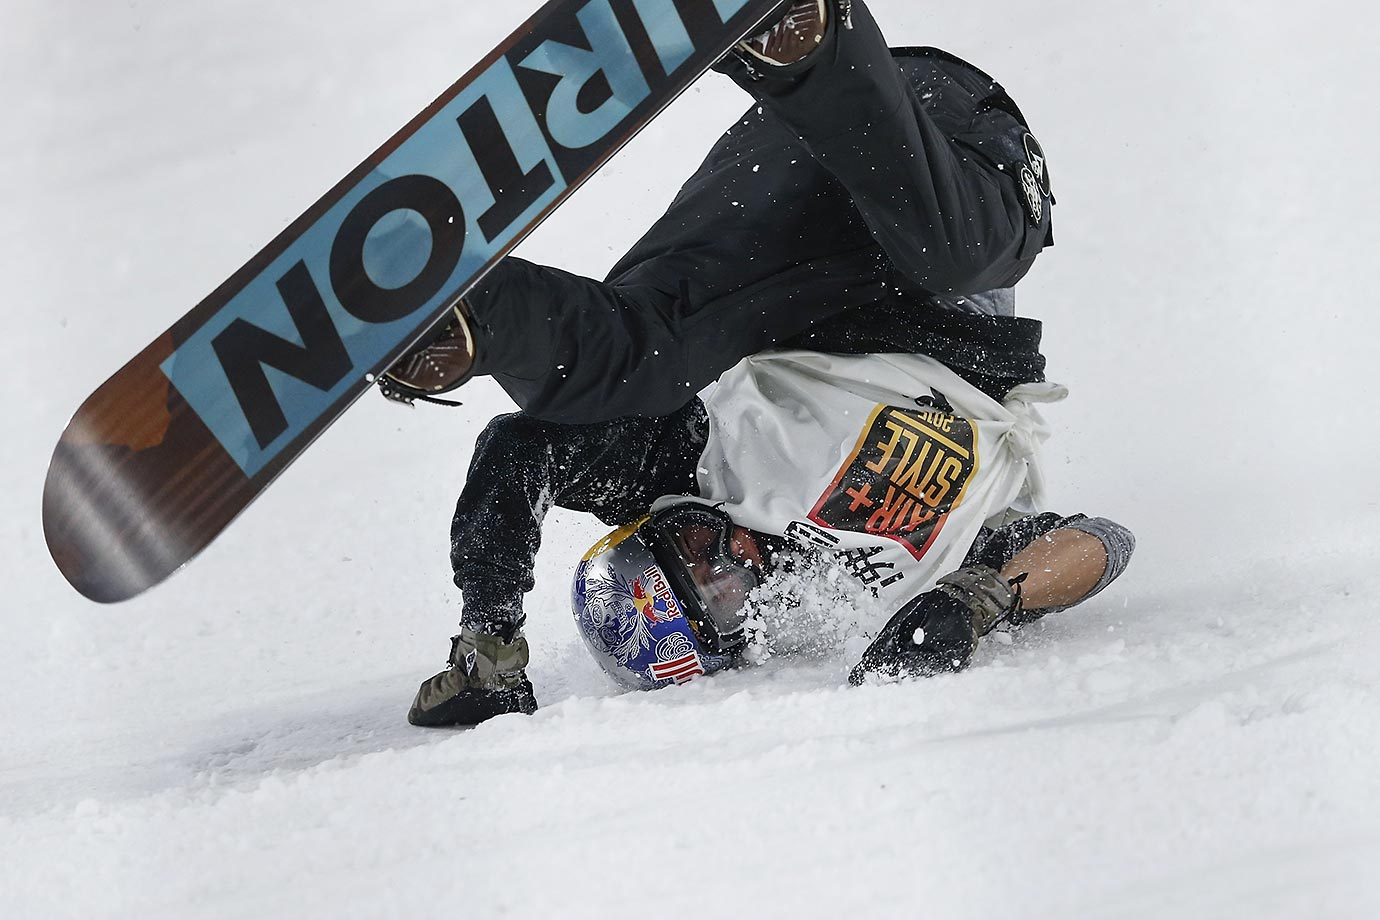 Mark McMorris crashes in his super final run during the Air-Style Beijing 2015 Snowboard World Cup.